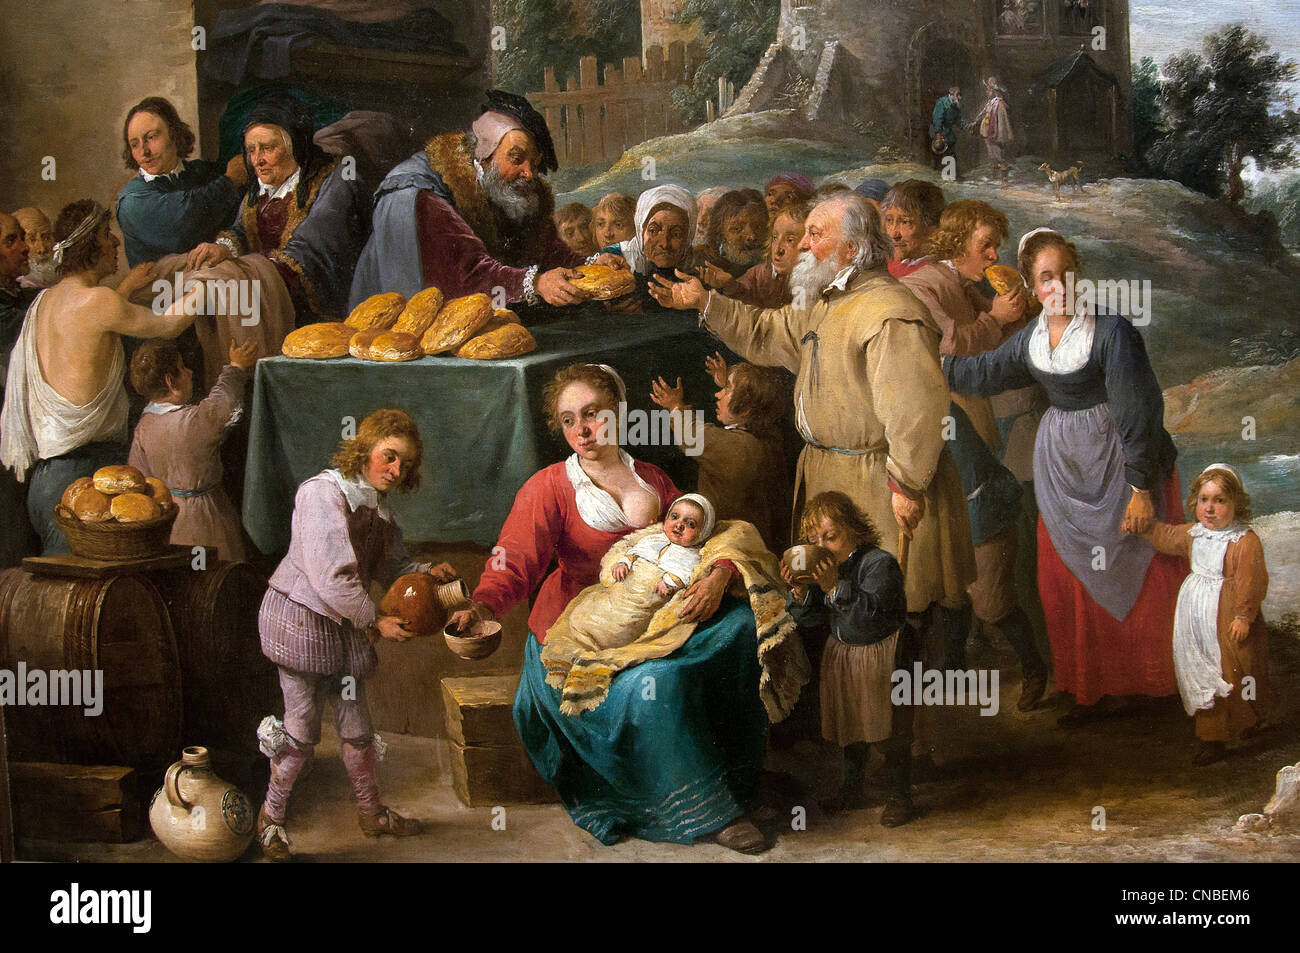 Les Oeuvres de miséricorde -  The Works of Mercy 1640 David Teniers the Younger 1610-1690 France French - Stock Image